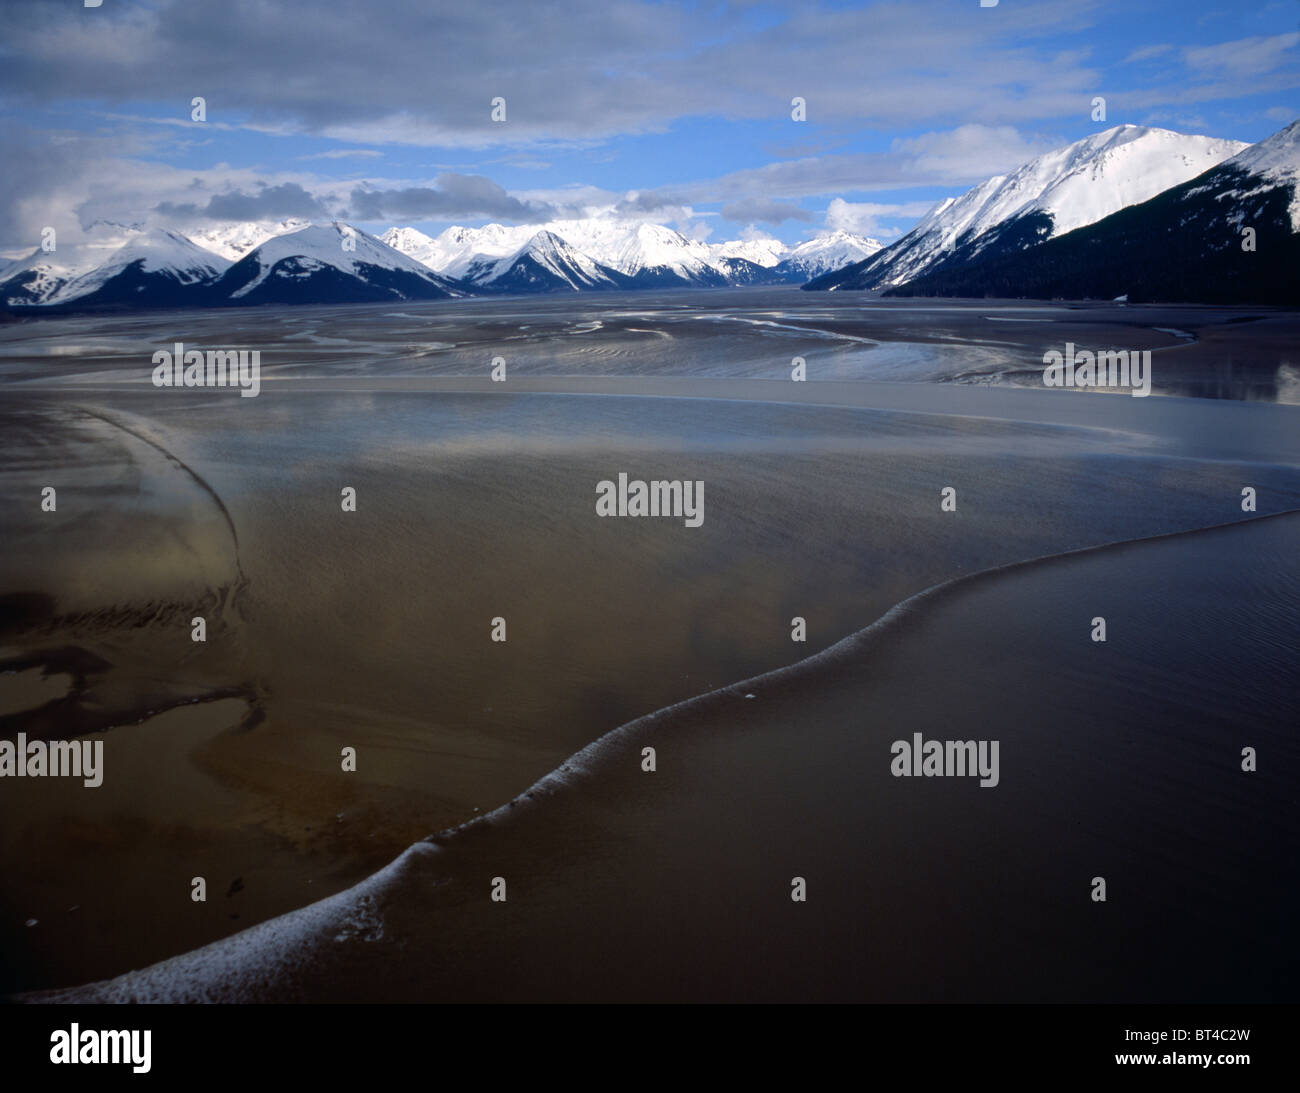 An aerial view of the Boretide as it advances through the Turnagain Arm. - Stock Image